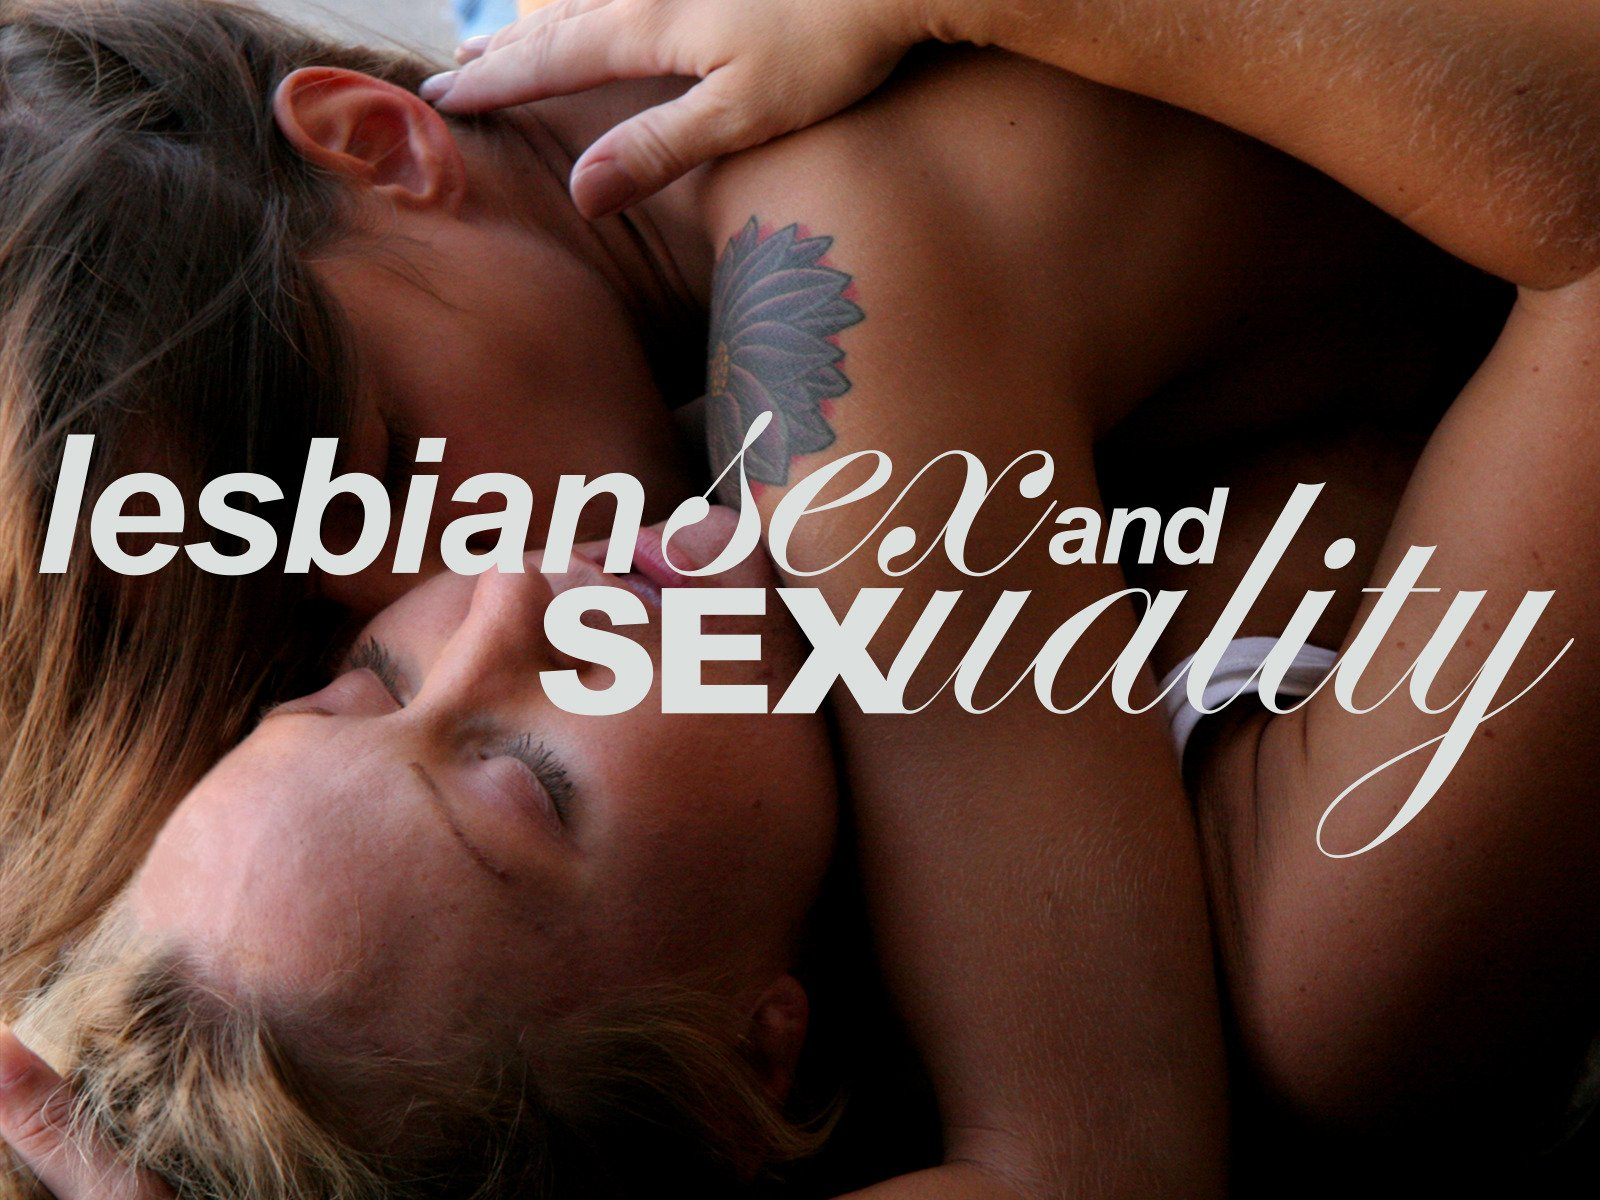 How to spice up lesbian sex life